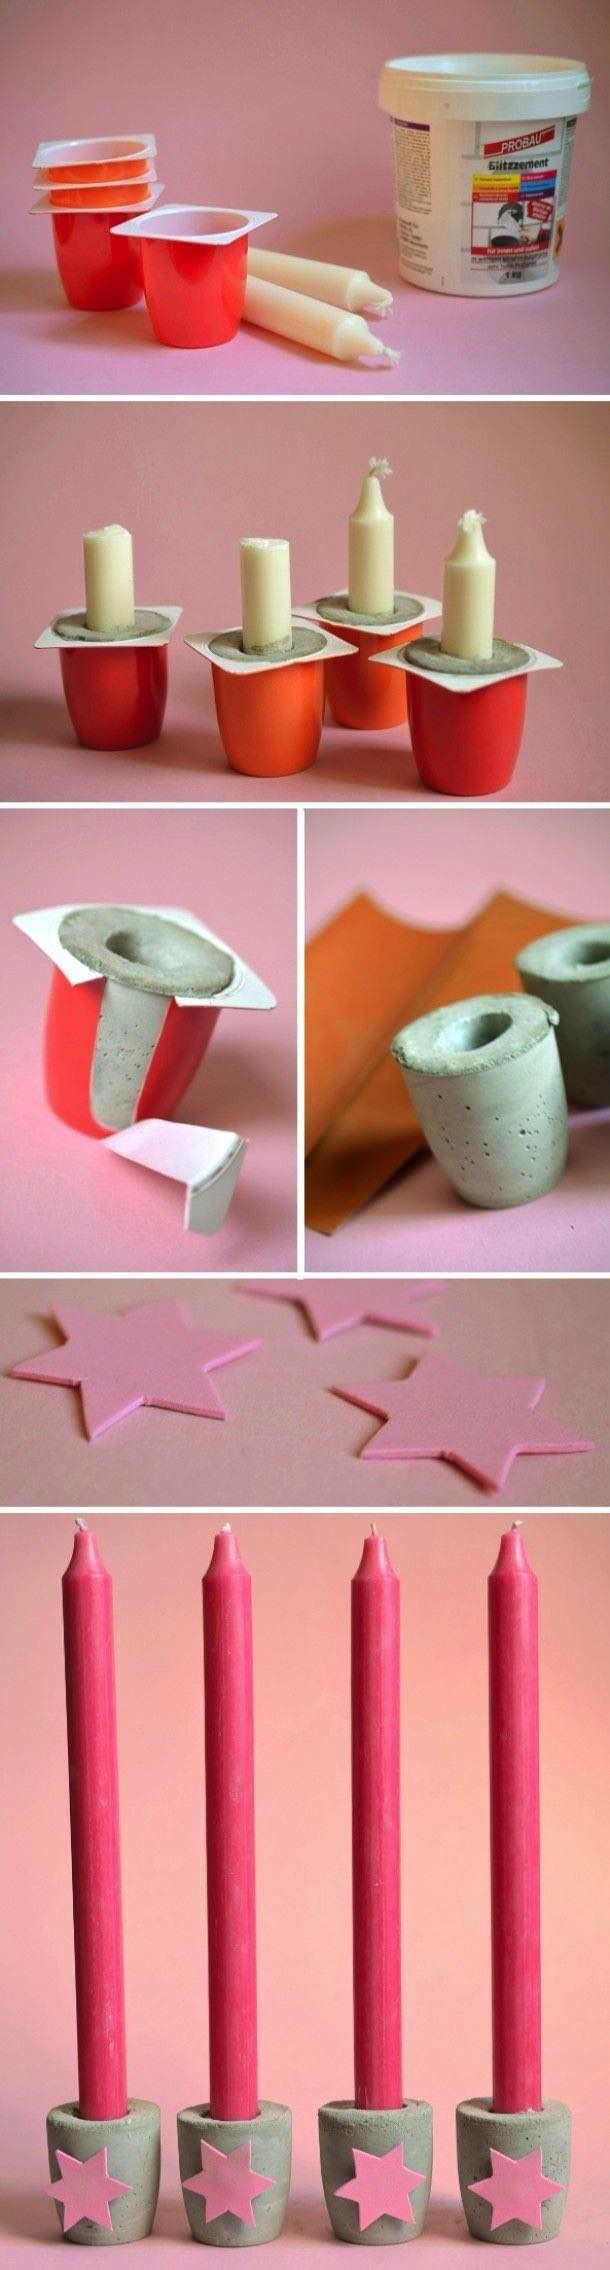 386 best messy church crafts images on Pinterest | Crafts for kids ...